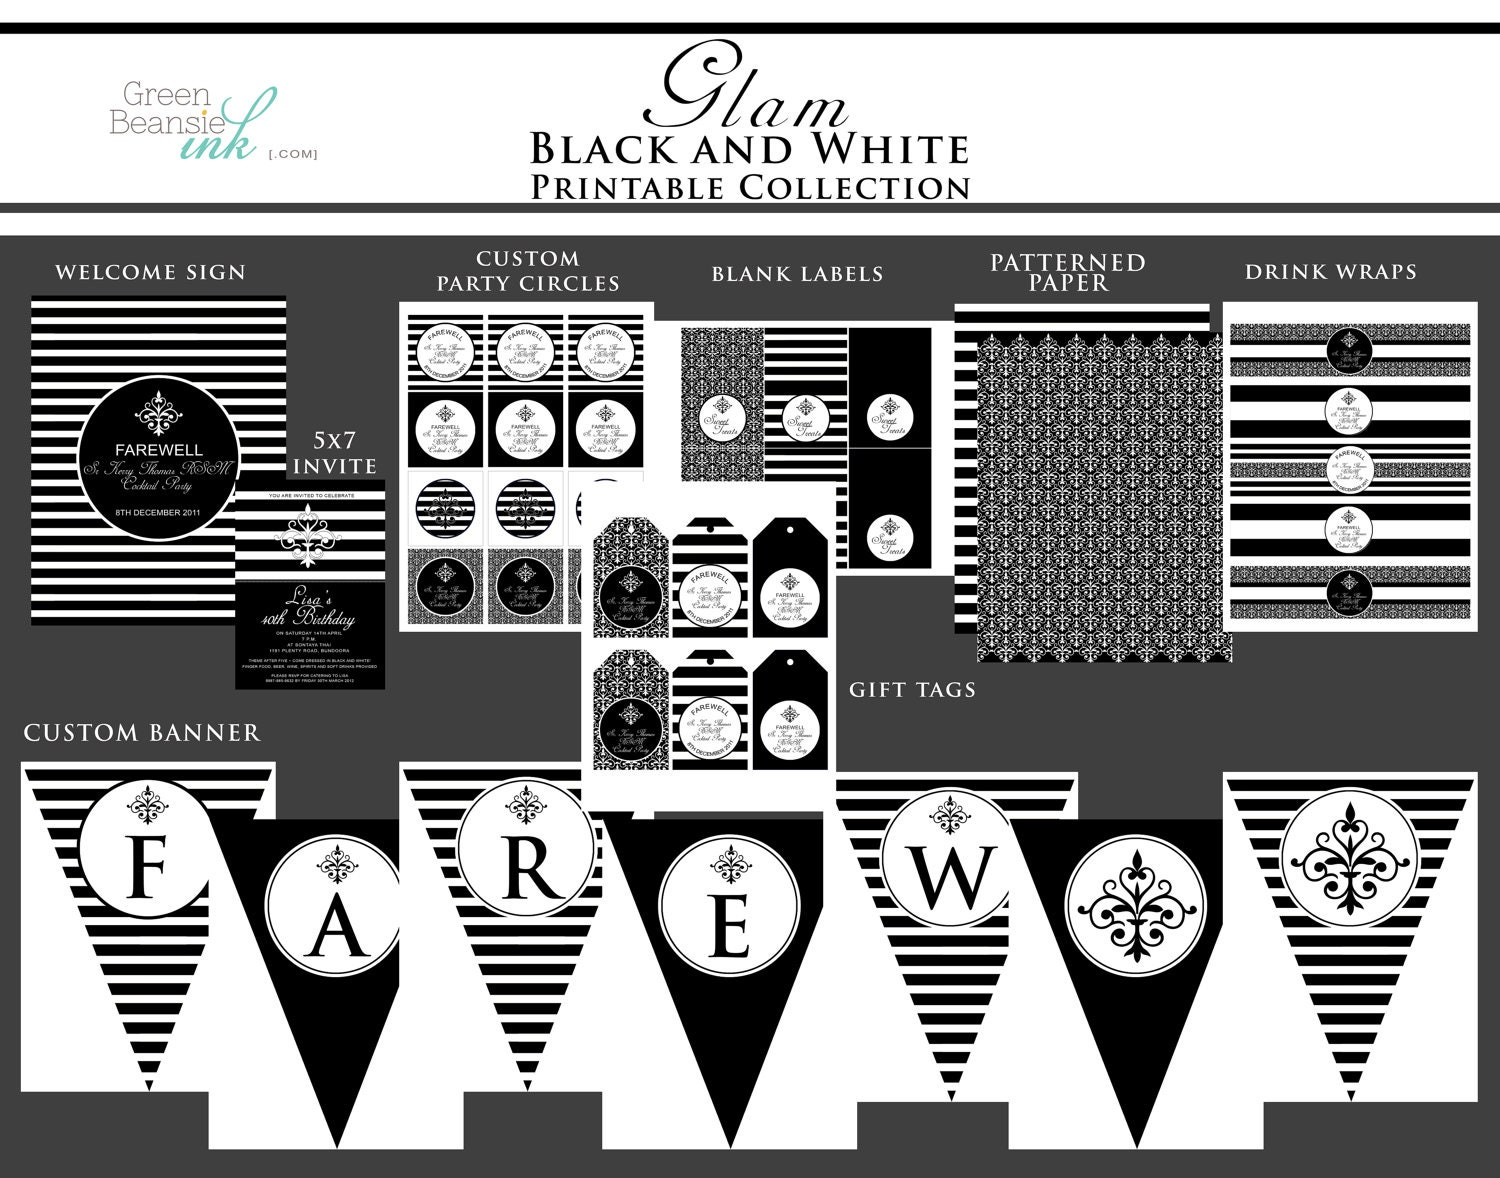 Glam Black and White Printable Party Decor Package and